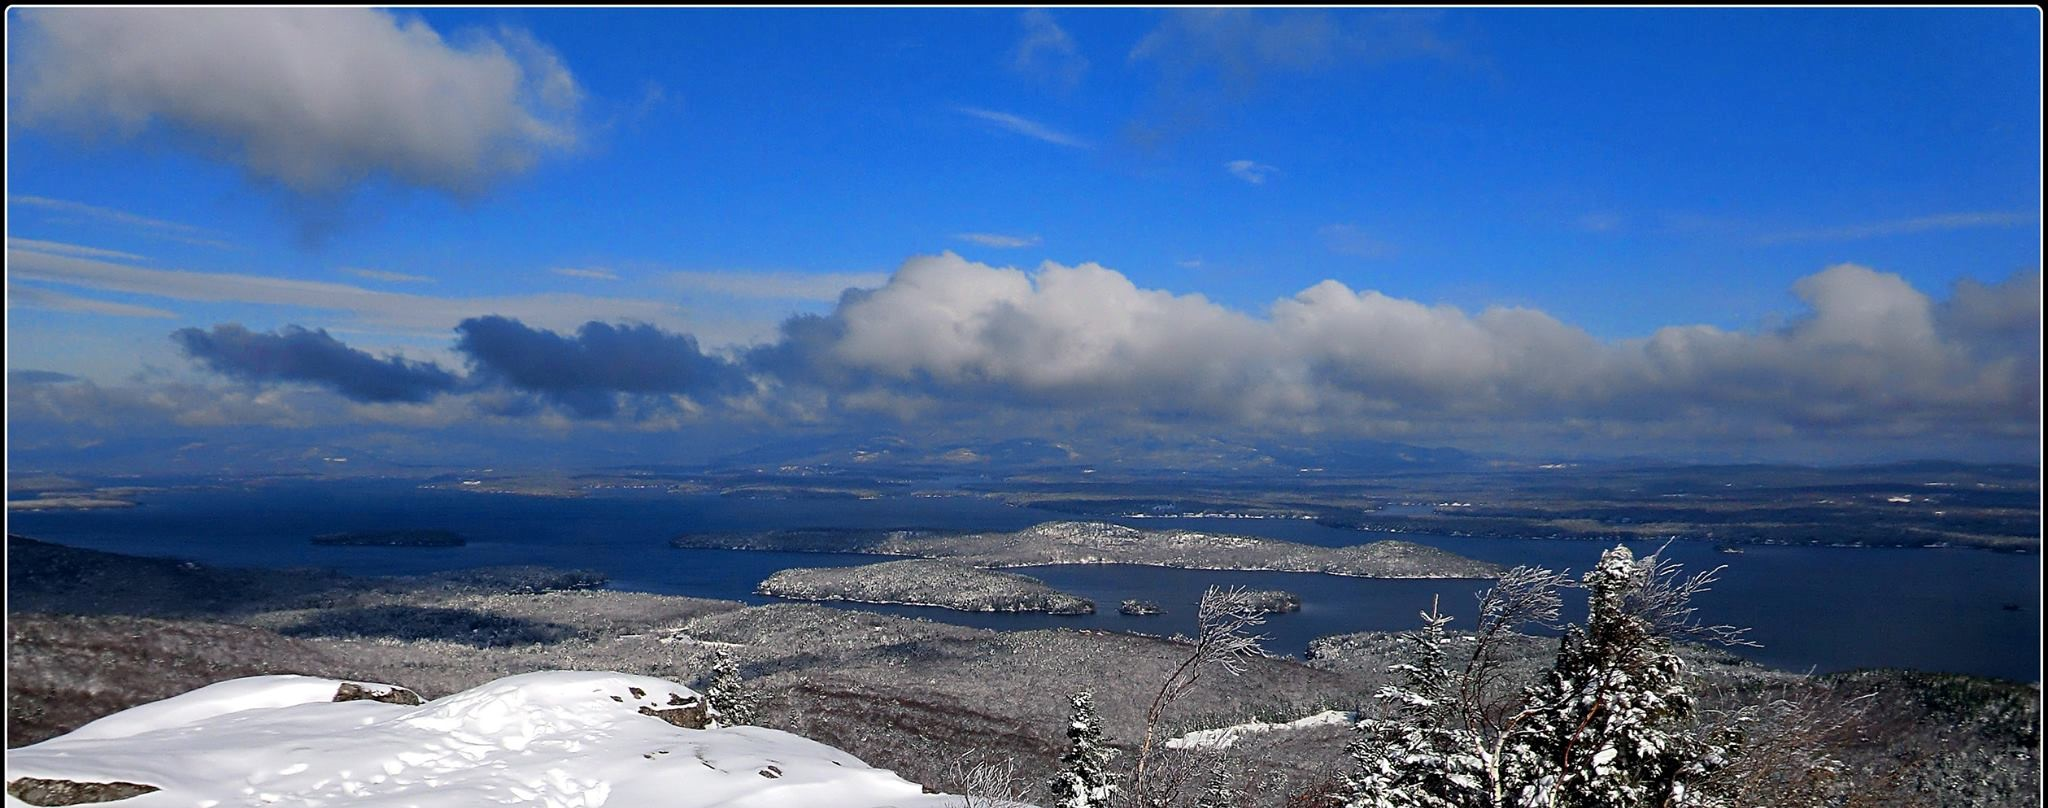 Lake Winnipesaukee Info   Lakes Region New Hampshire Information –  NH Vacation Attractions, Dining, Lodging, Boating, Beaches, Fishing, Hiking, Snowmobiling